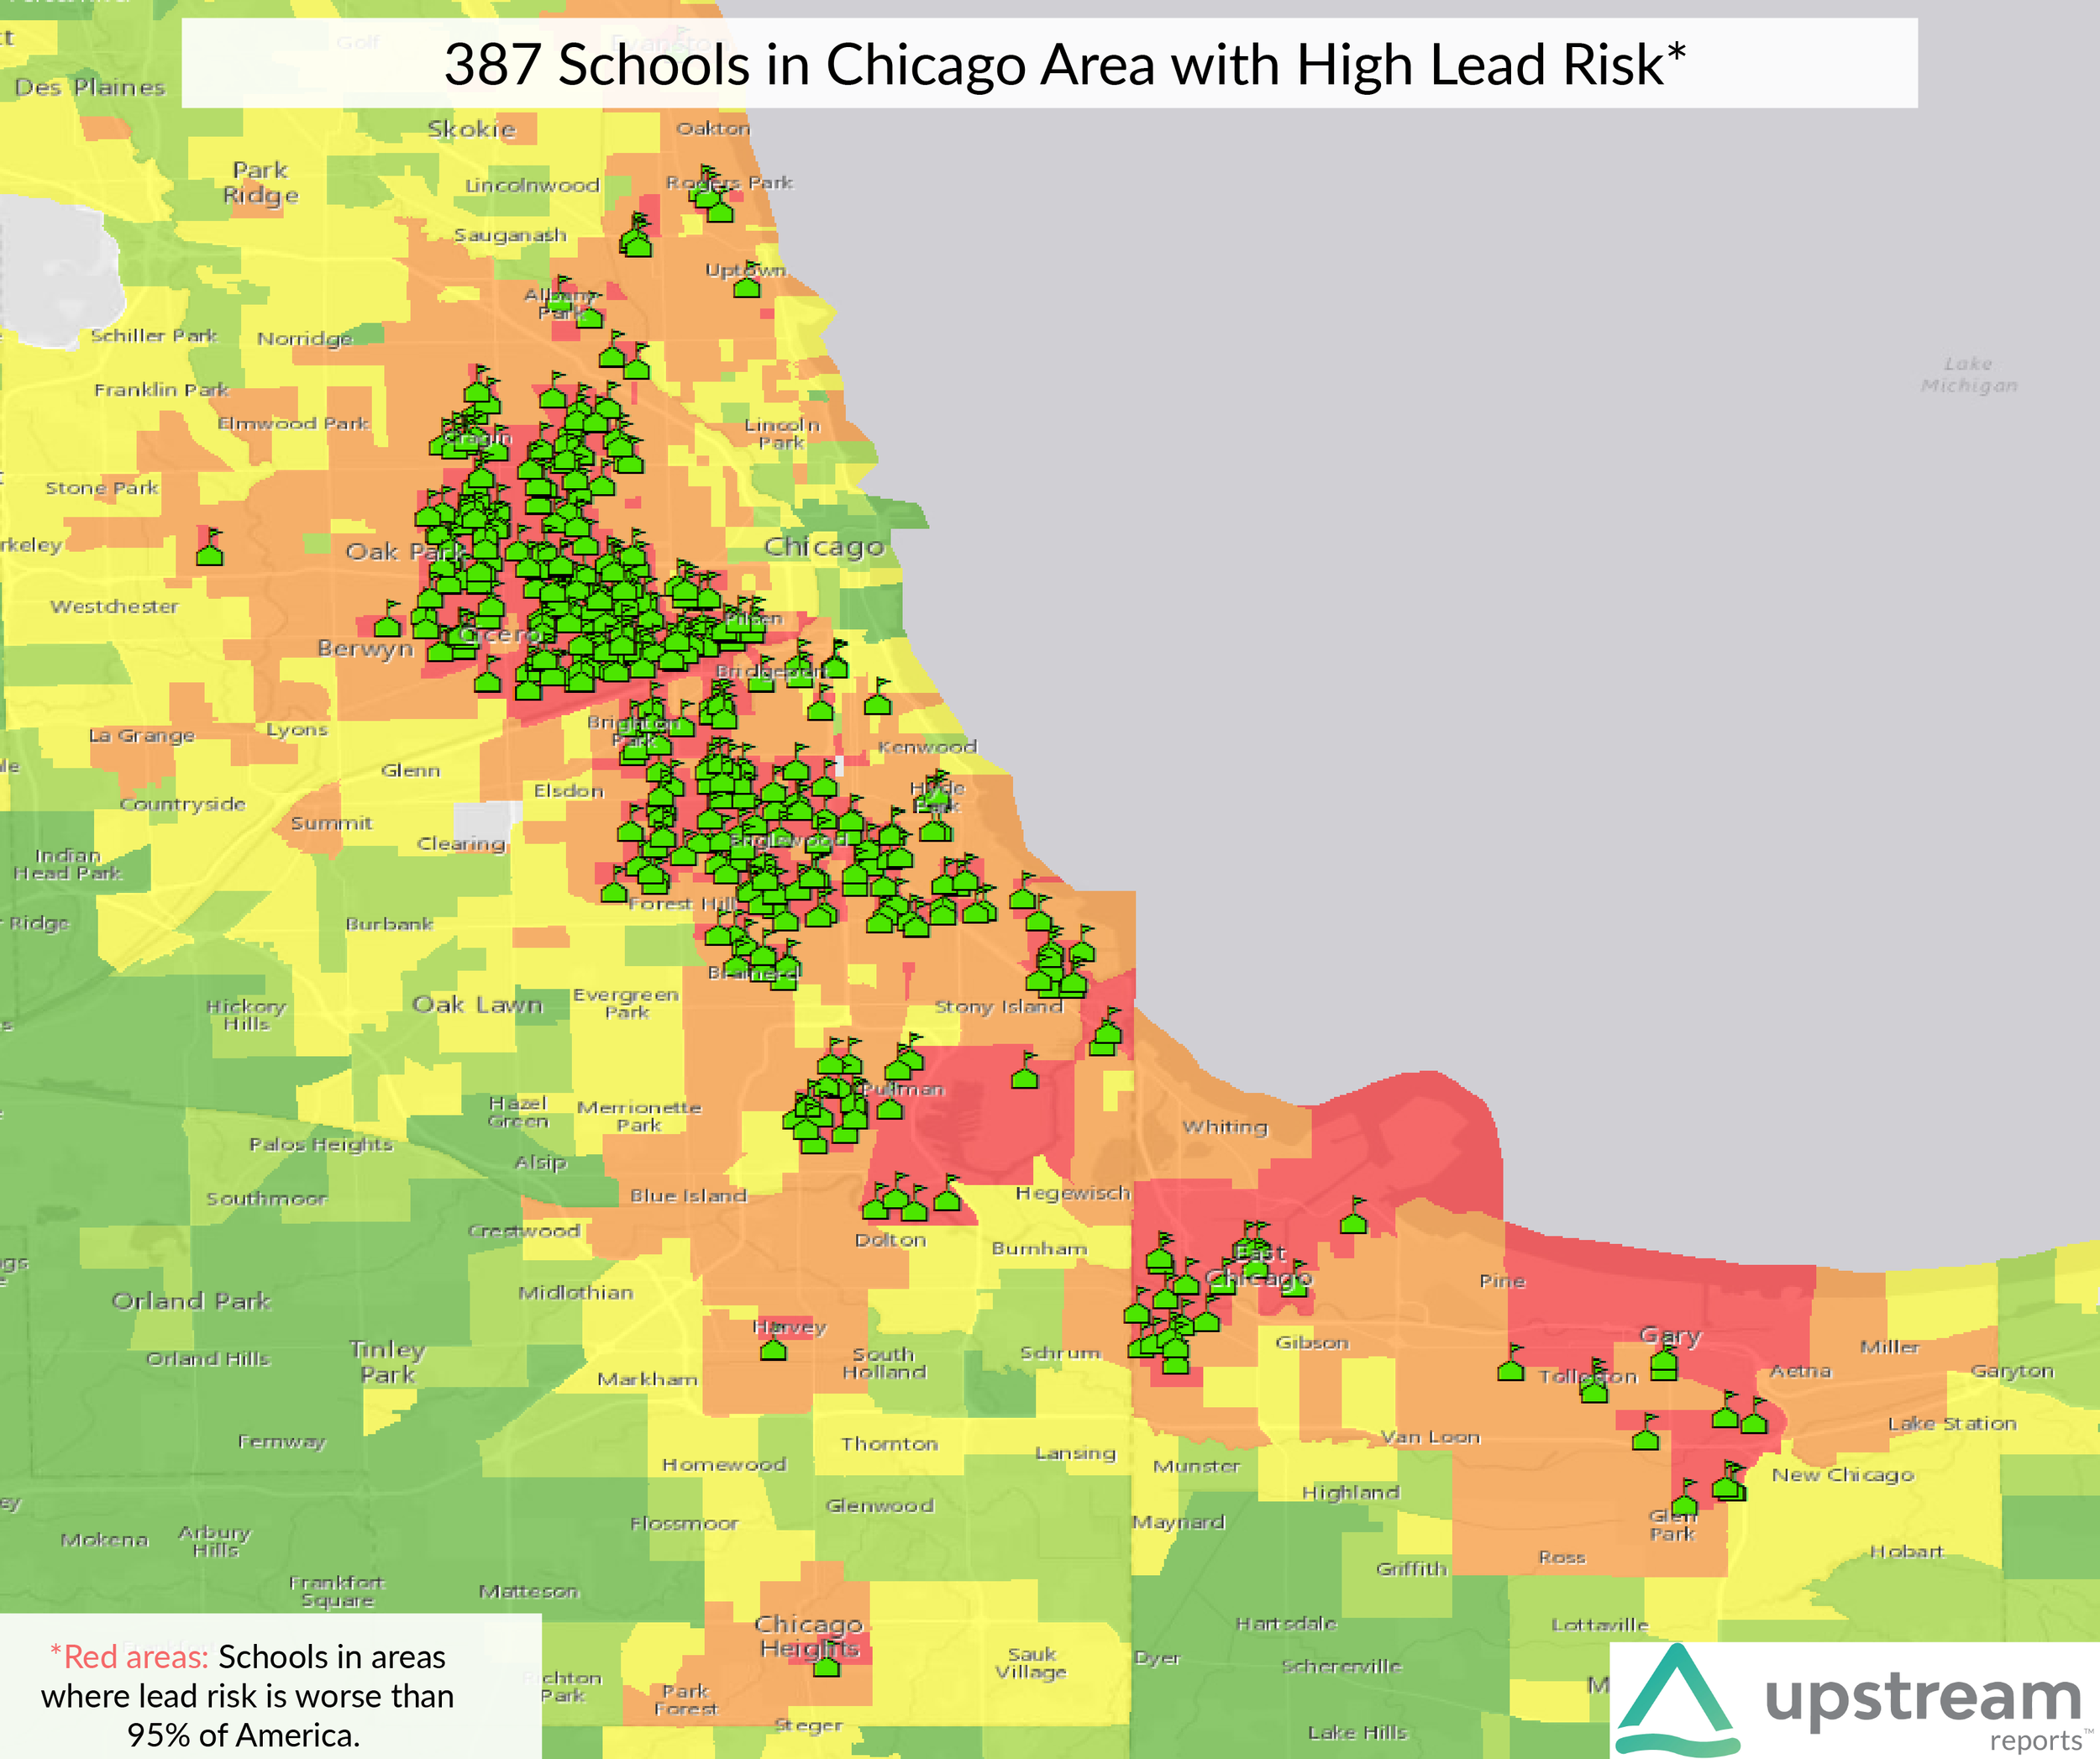 chicago_schools_387Branded.png